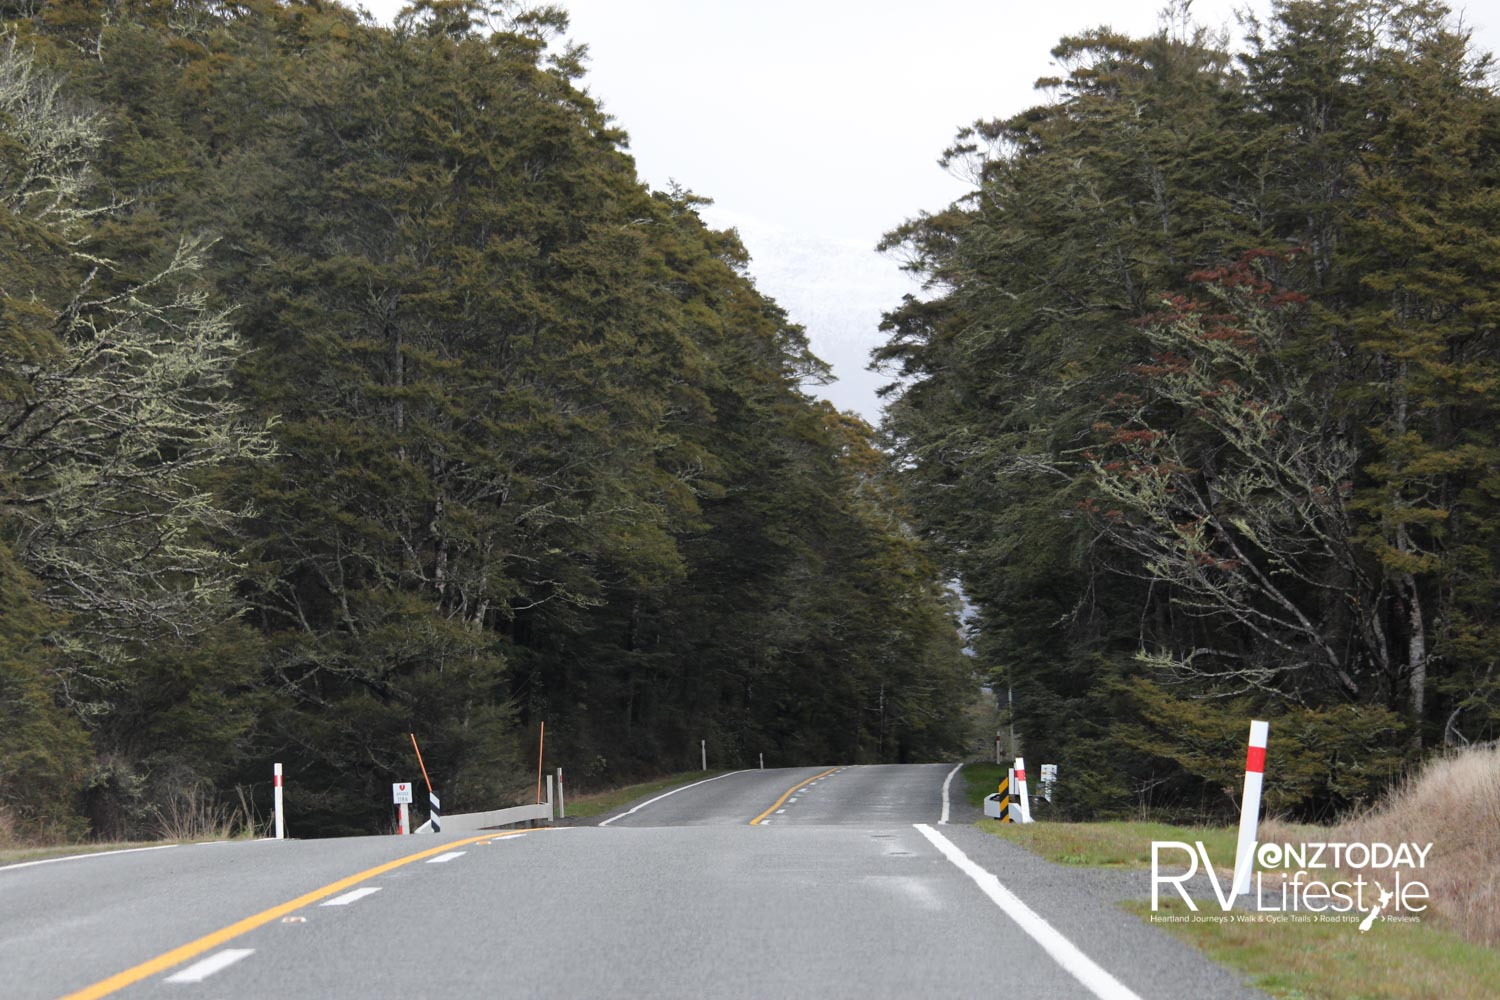 Much of the Lewis Pass and Shenandoah highways are like this – through heavy native forest